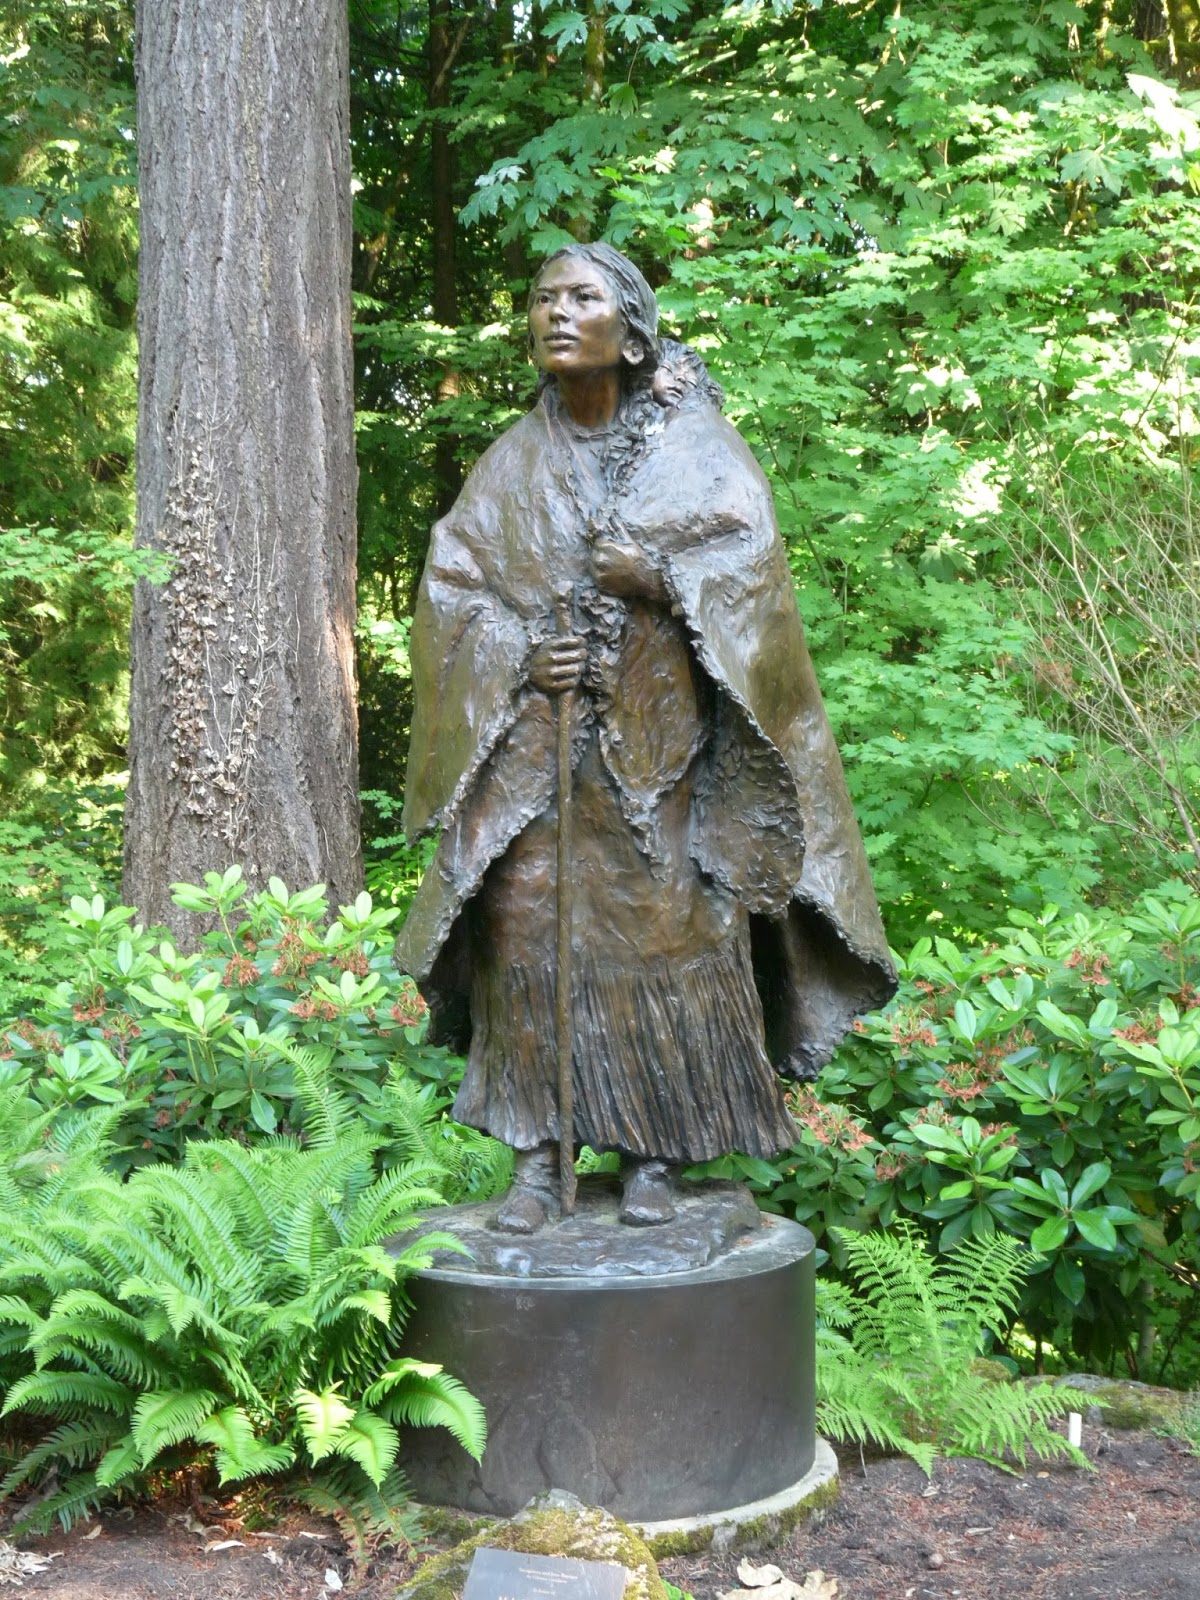 The Sacagawea and Jean Baptiste bronze that stands on the Lewis and Clark College campus.  It was created by Glenna Goodacre, who also designed the gold Sacagawea coin.  It was dedicated in 2004.